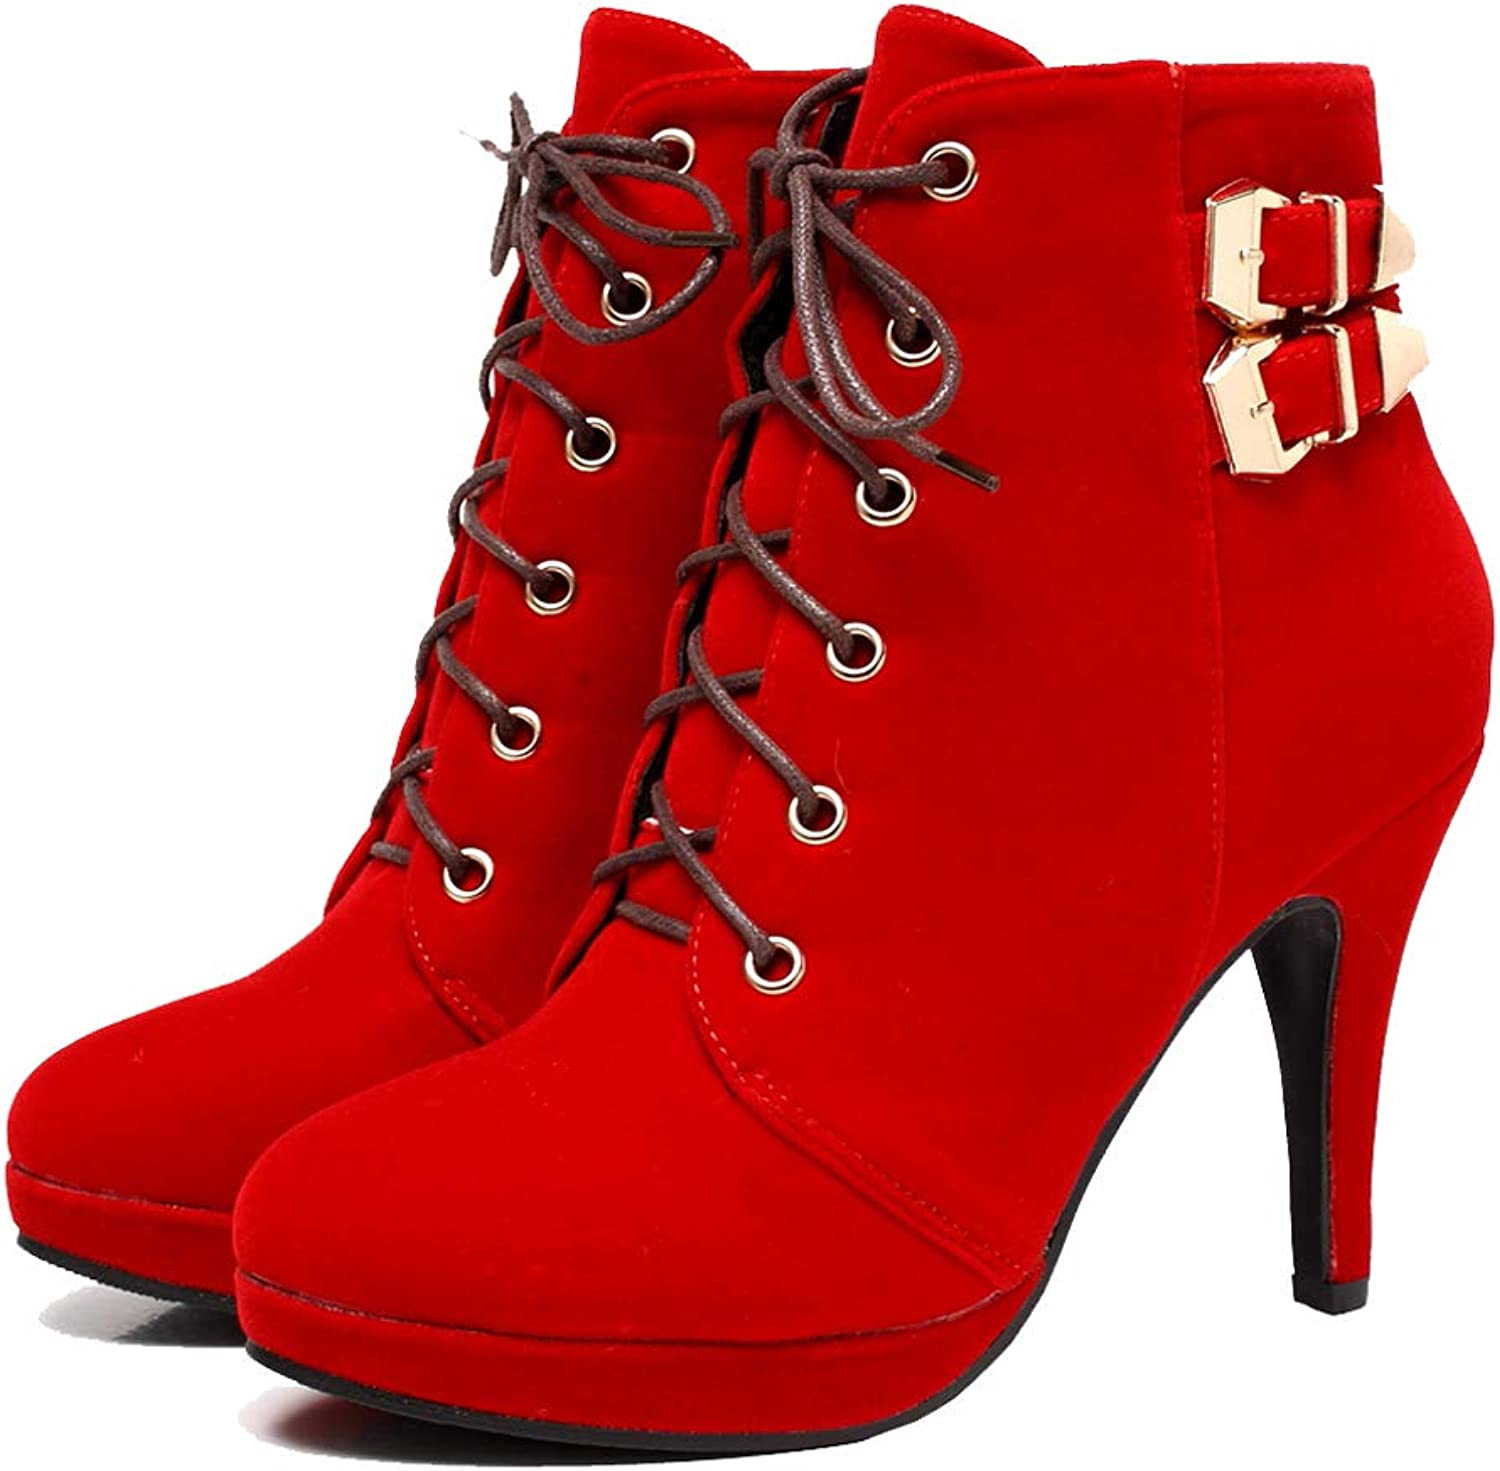 Getmorebeauty Womens Stylish hot lace up Stiletto high Heel Sexy Platform Motorcycle Boots shoes